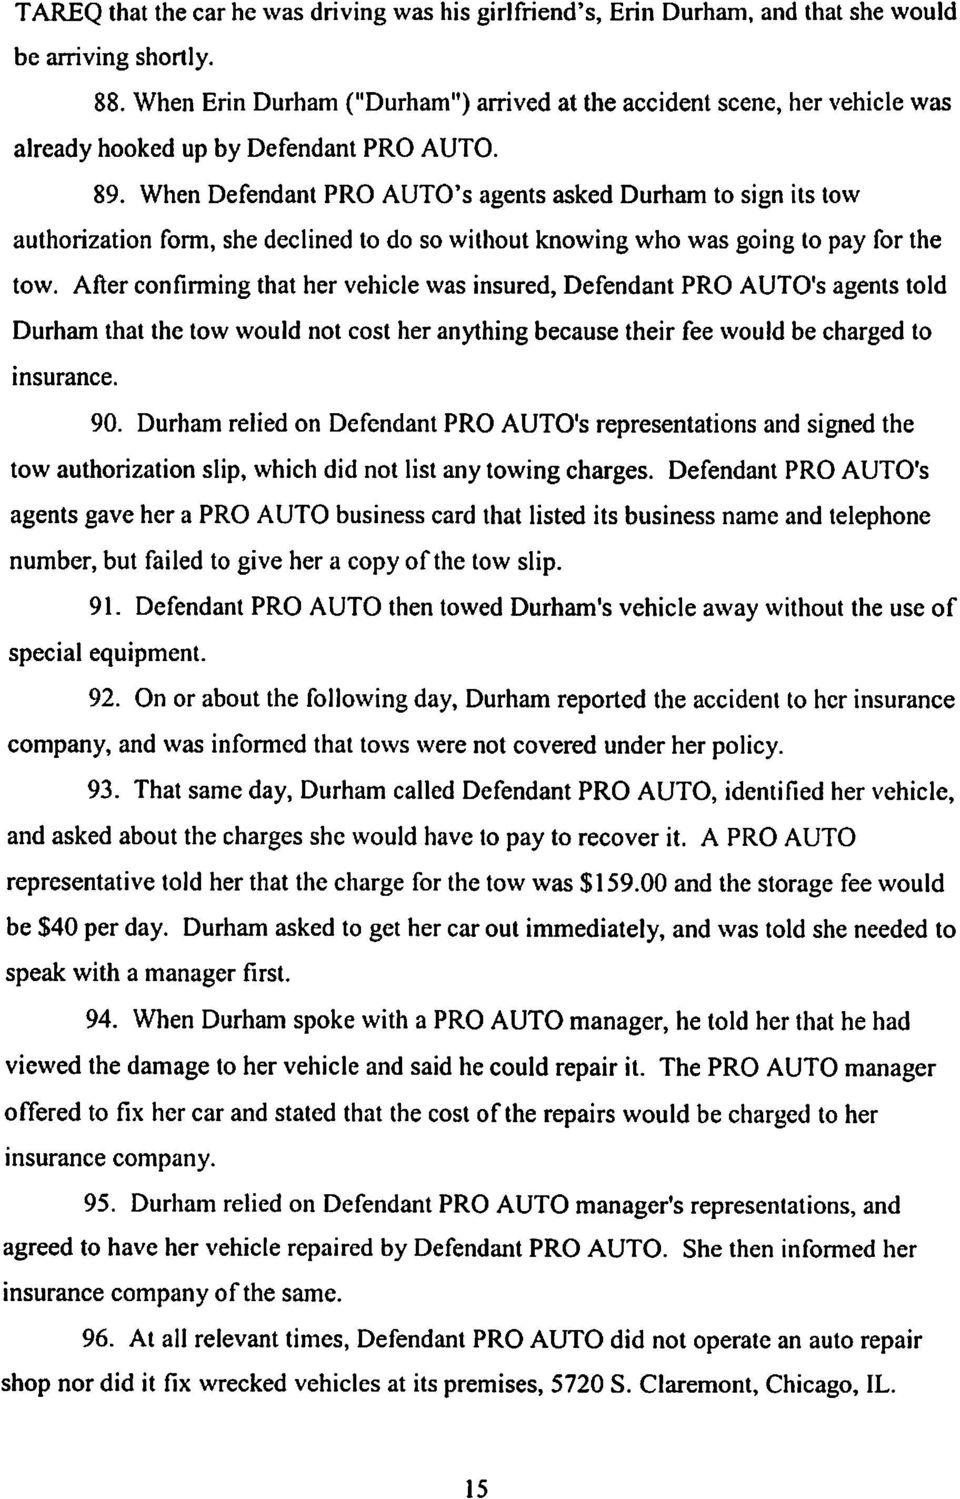 When Defendant PRO AUTO's agents asked Durham to sign its tow authorization form, she declined to do so without knowing who was going to pay for the tow.